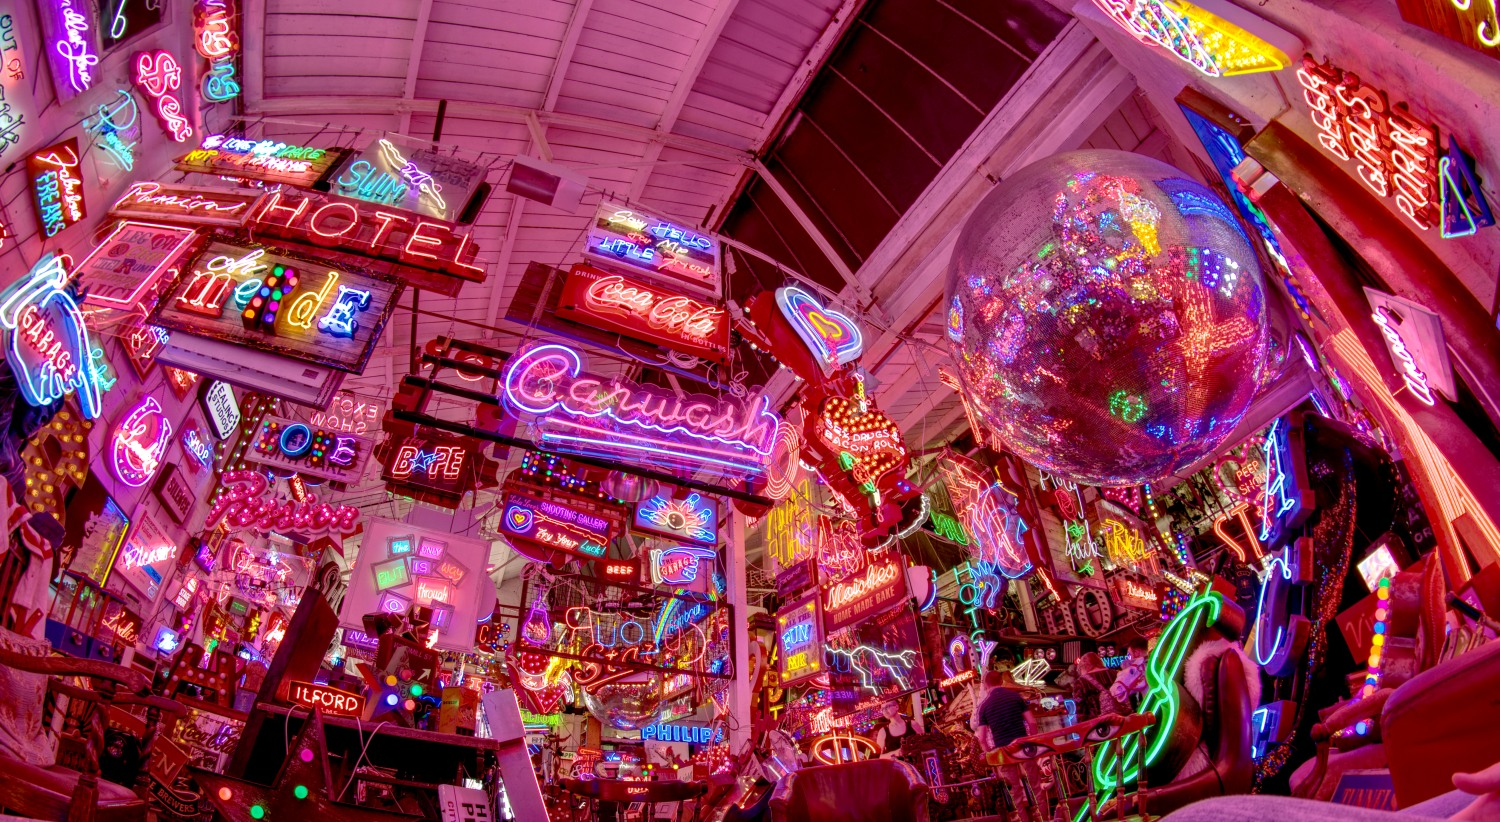 God's own junkyard: electric neon signs as far as the eye can see